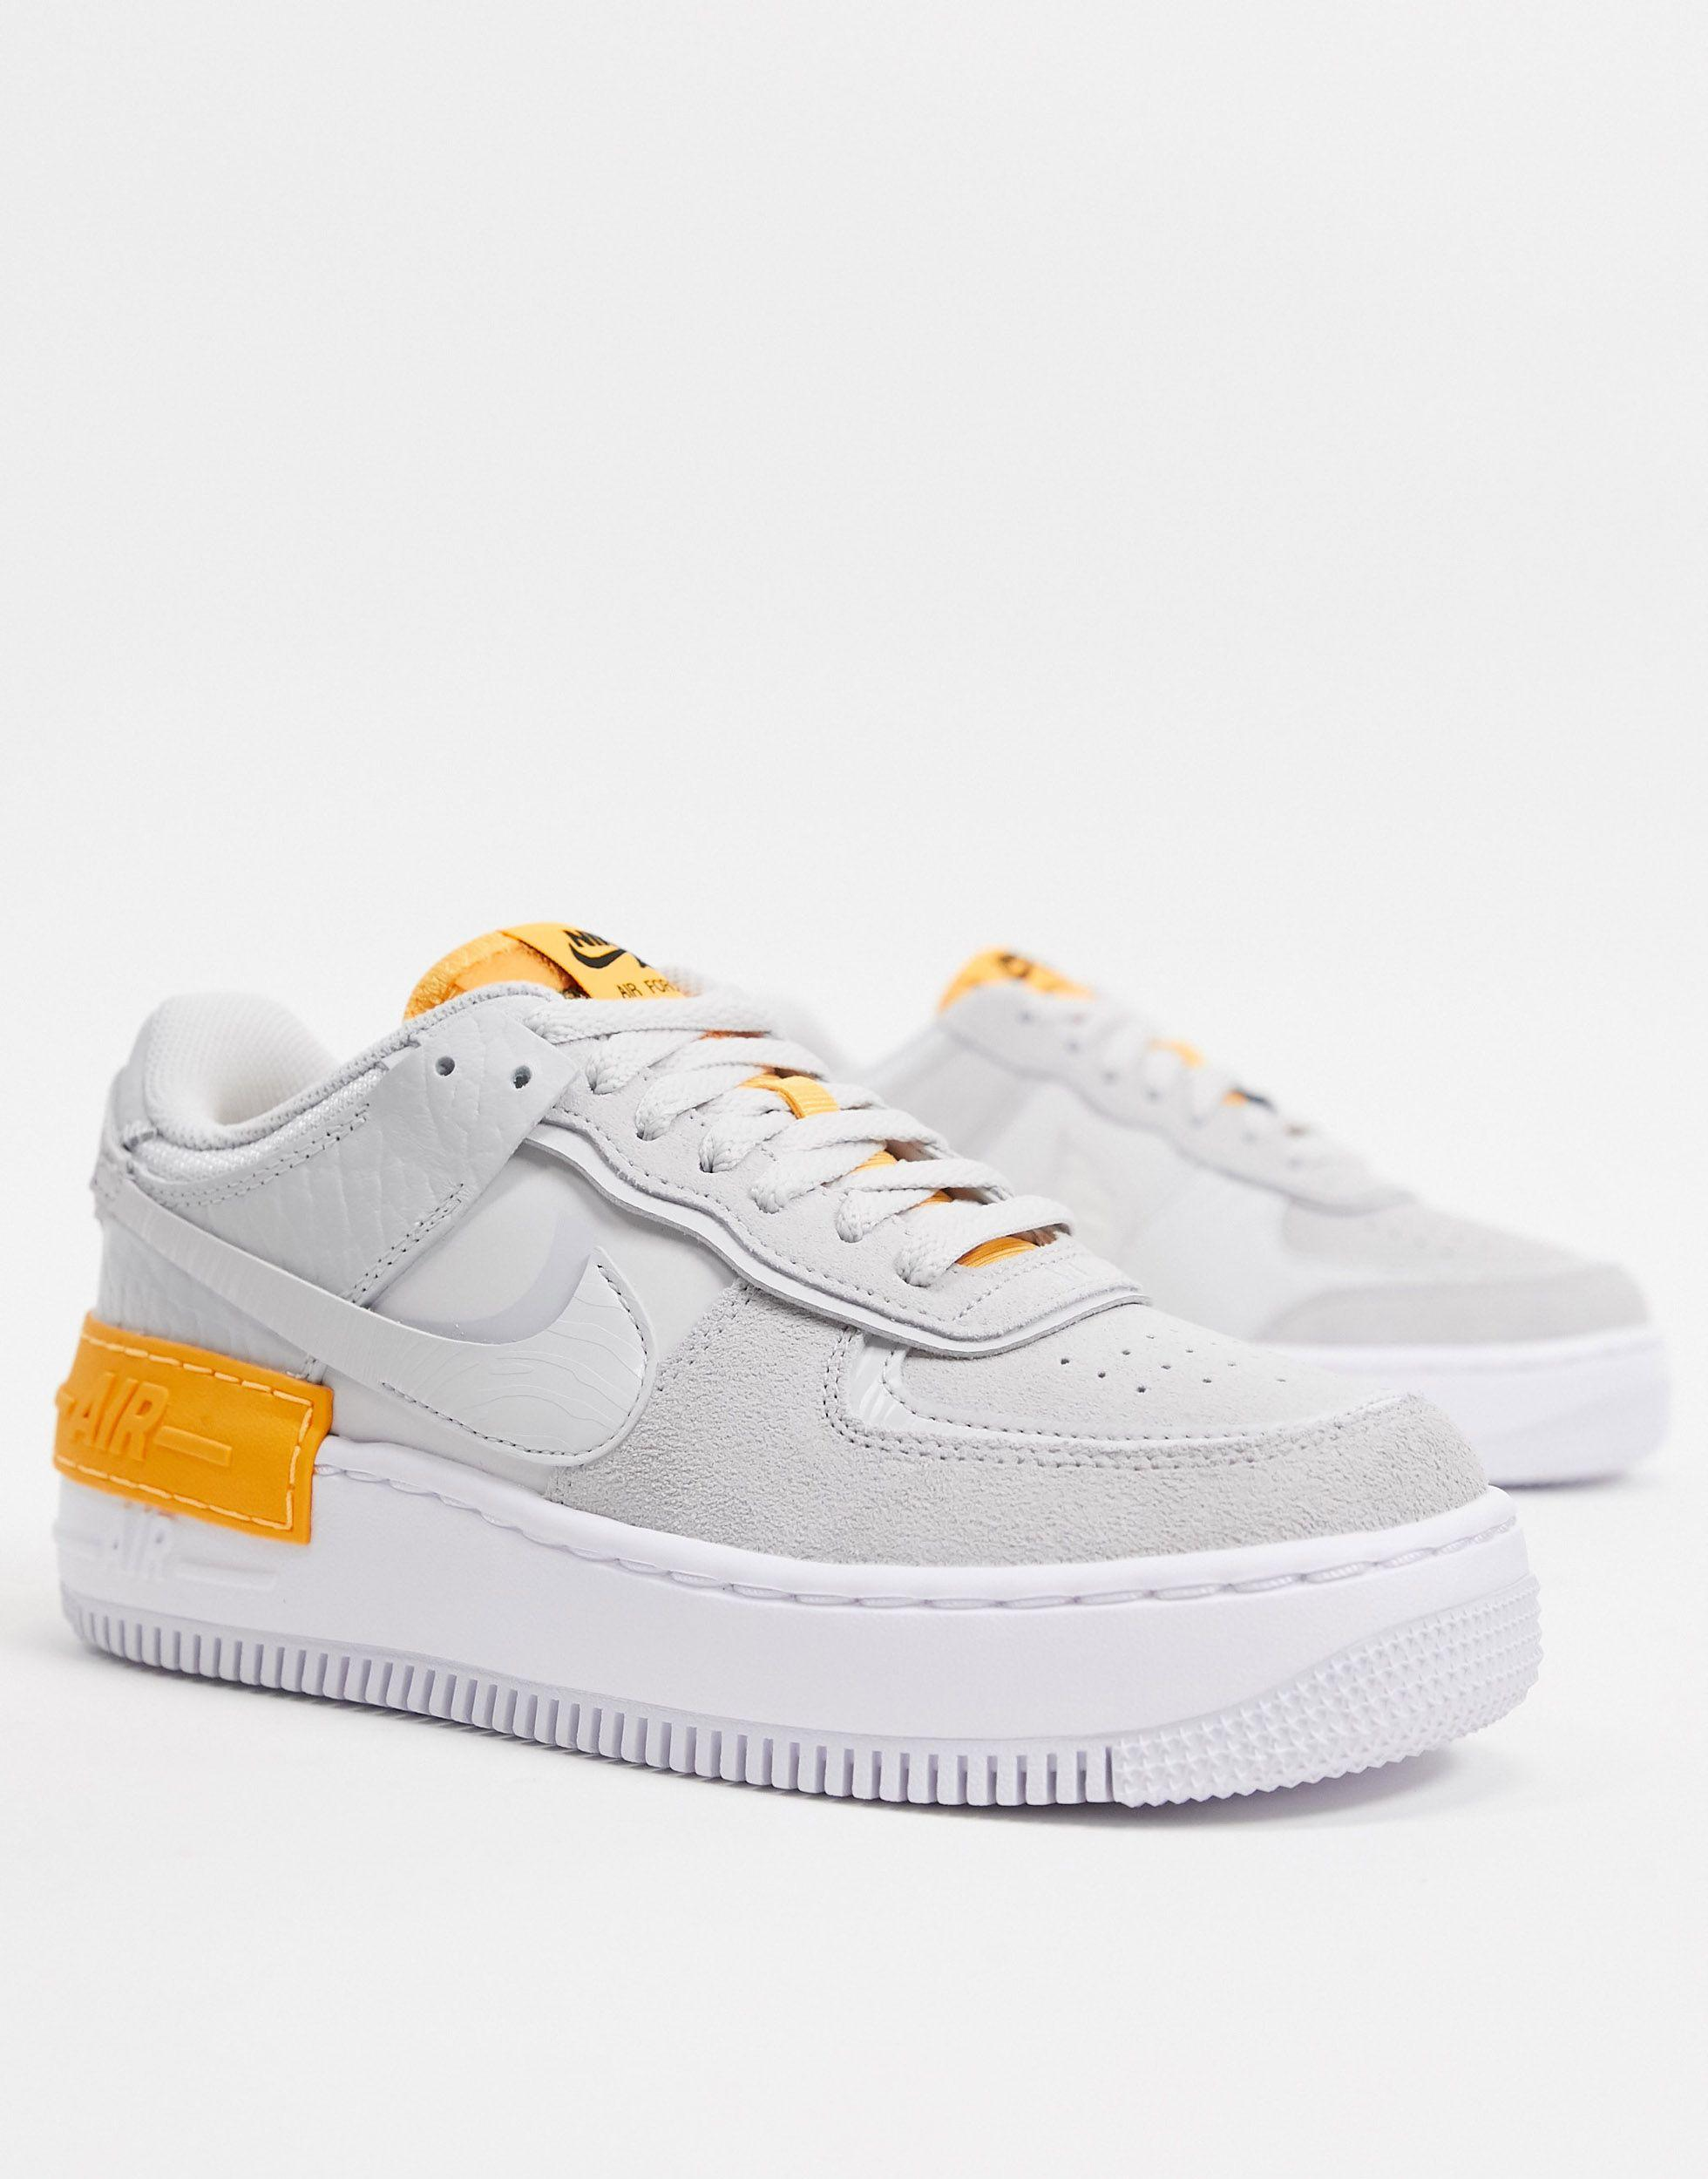 Nike Air Force 1 Shadow Shoe In Grey Grey Save 56 Lyst Featuring the iconic air force 1 silhouette, the 'shadow' has been given the playful deconstructed uppers treatment. air force 1 shadow shoe